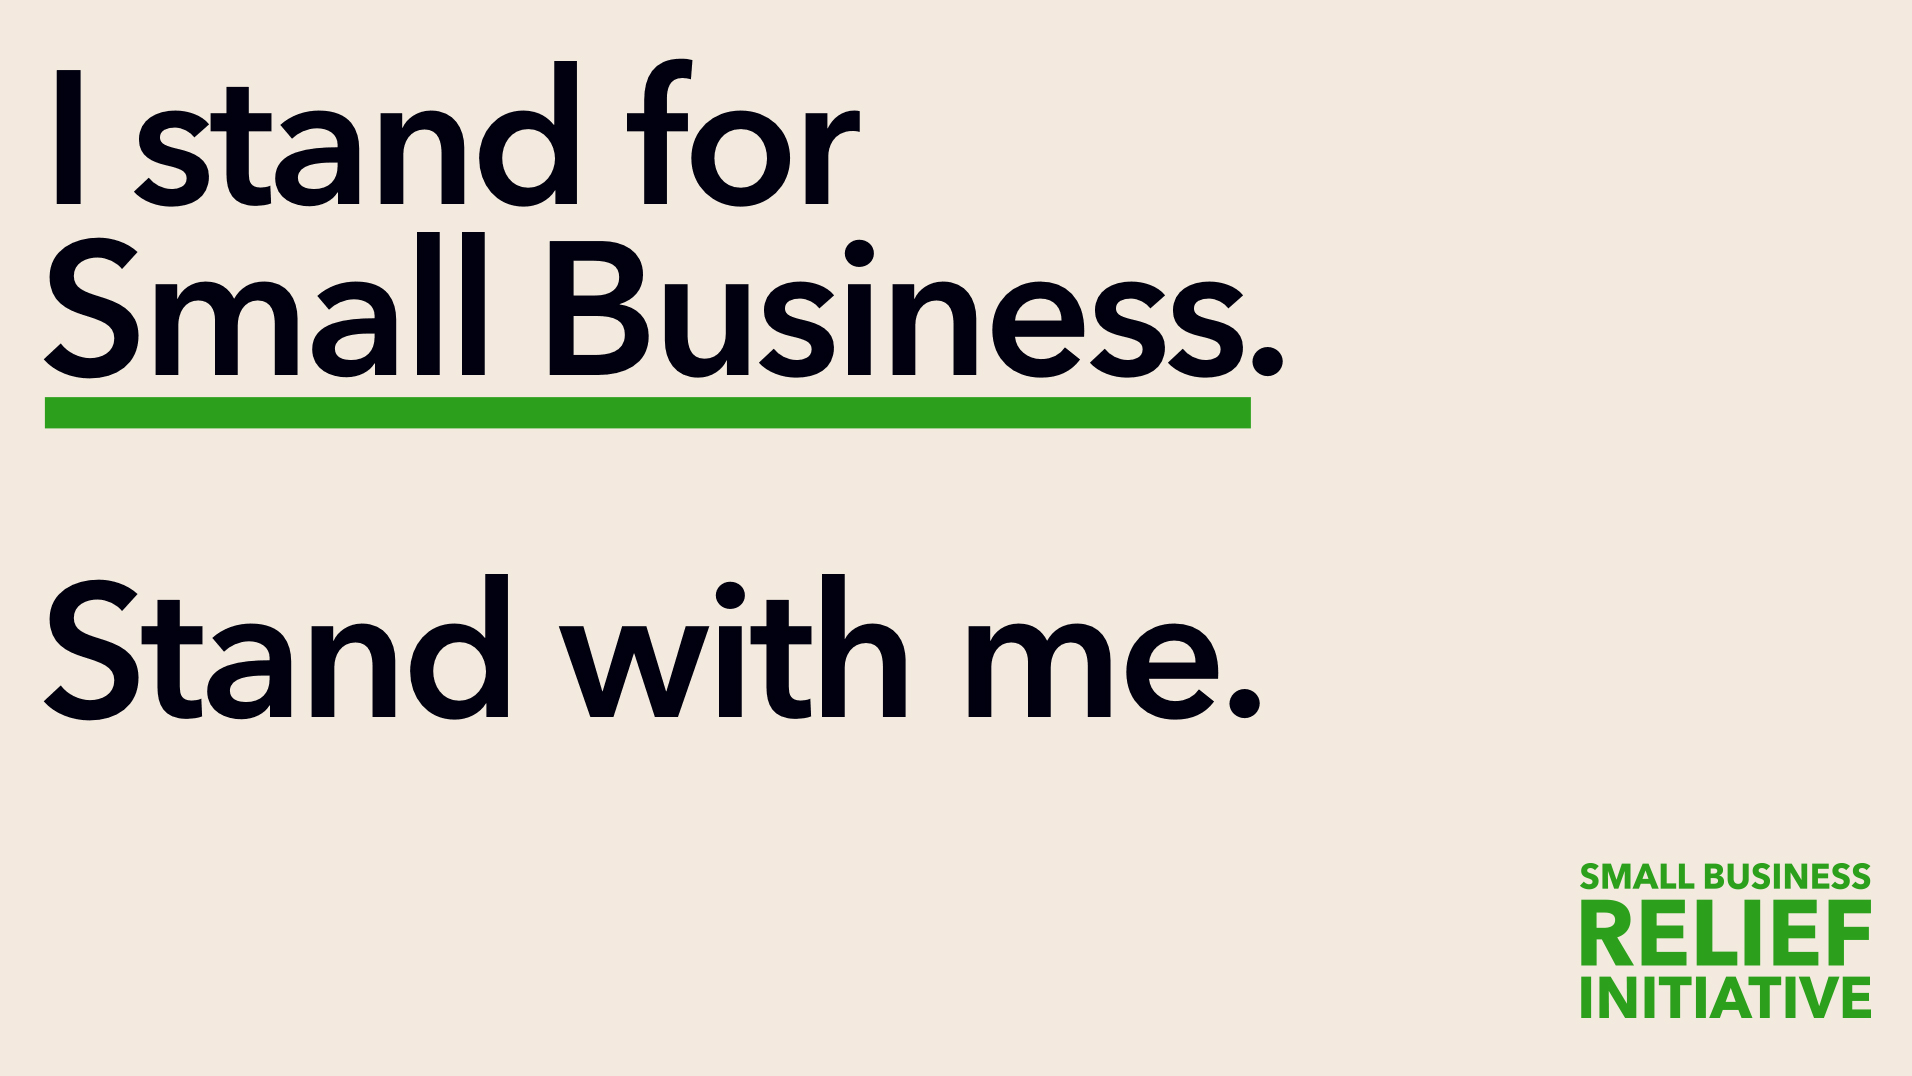 Melio is proud to partner with Intuit QuickBooks and GoFundMe Small Business Relief Initiative